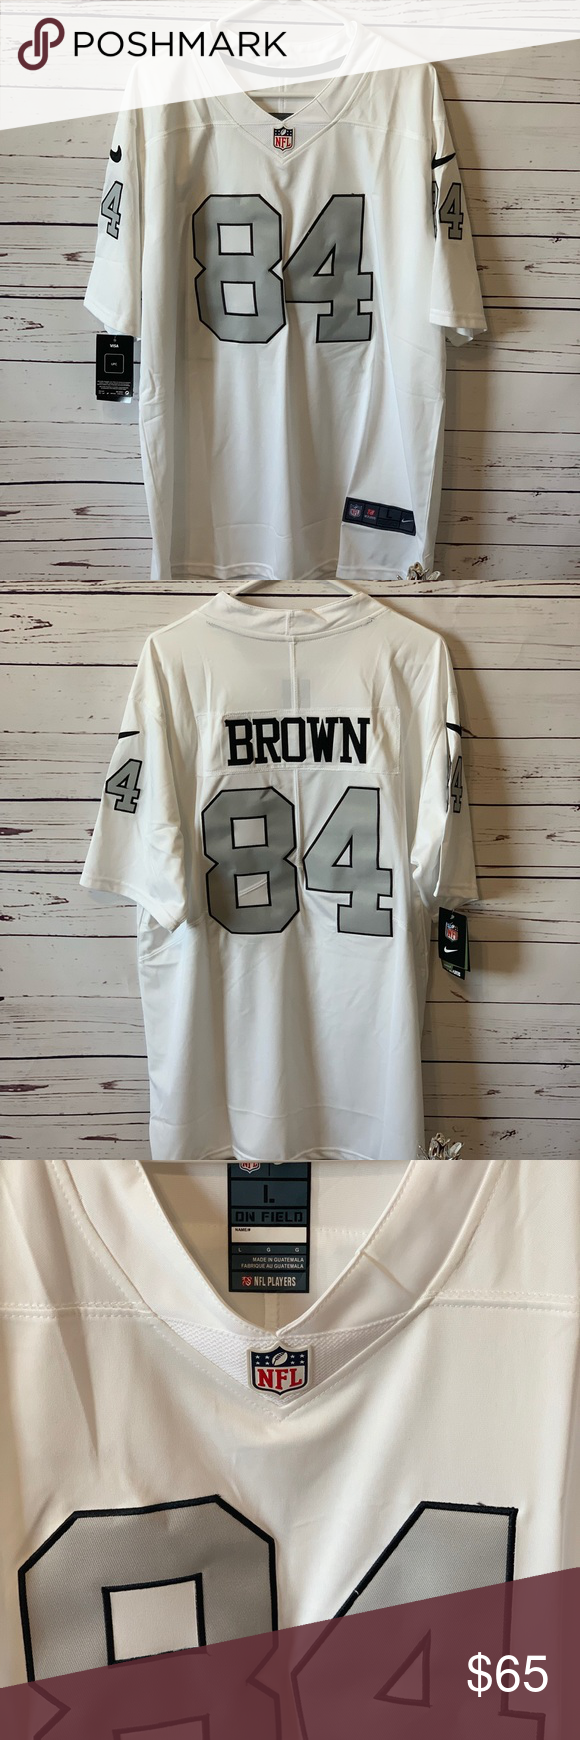 low priced ee7e8 88d10 antonio brown stitched jersey